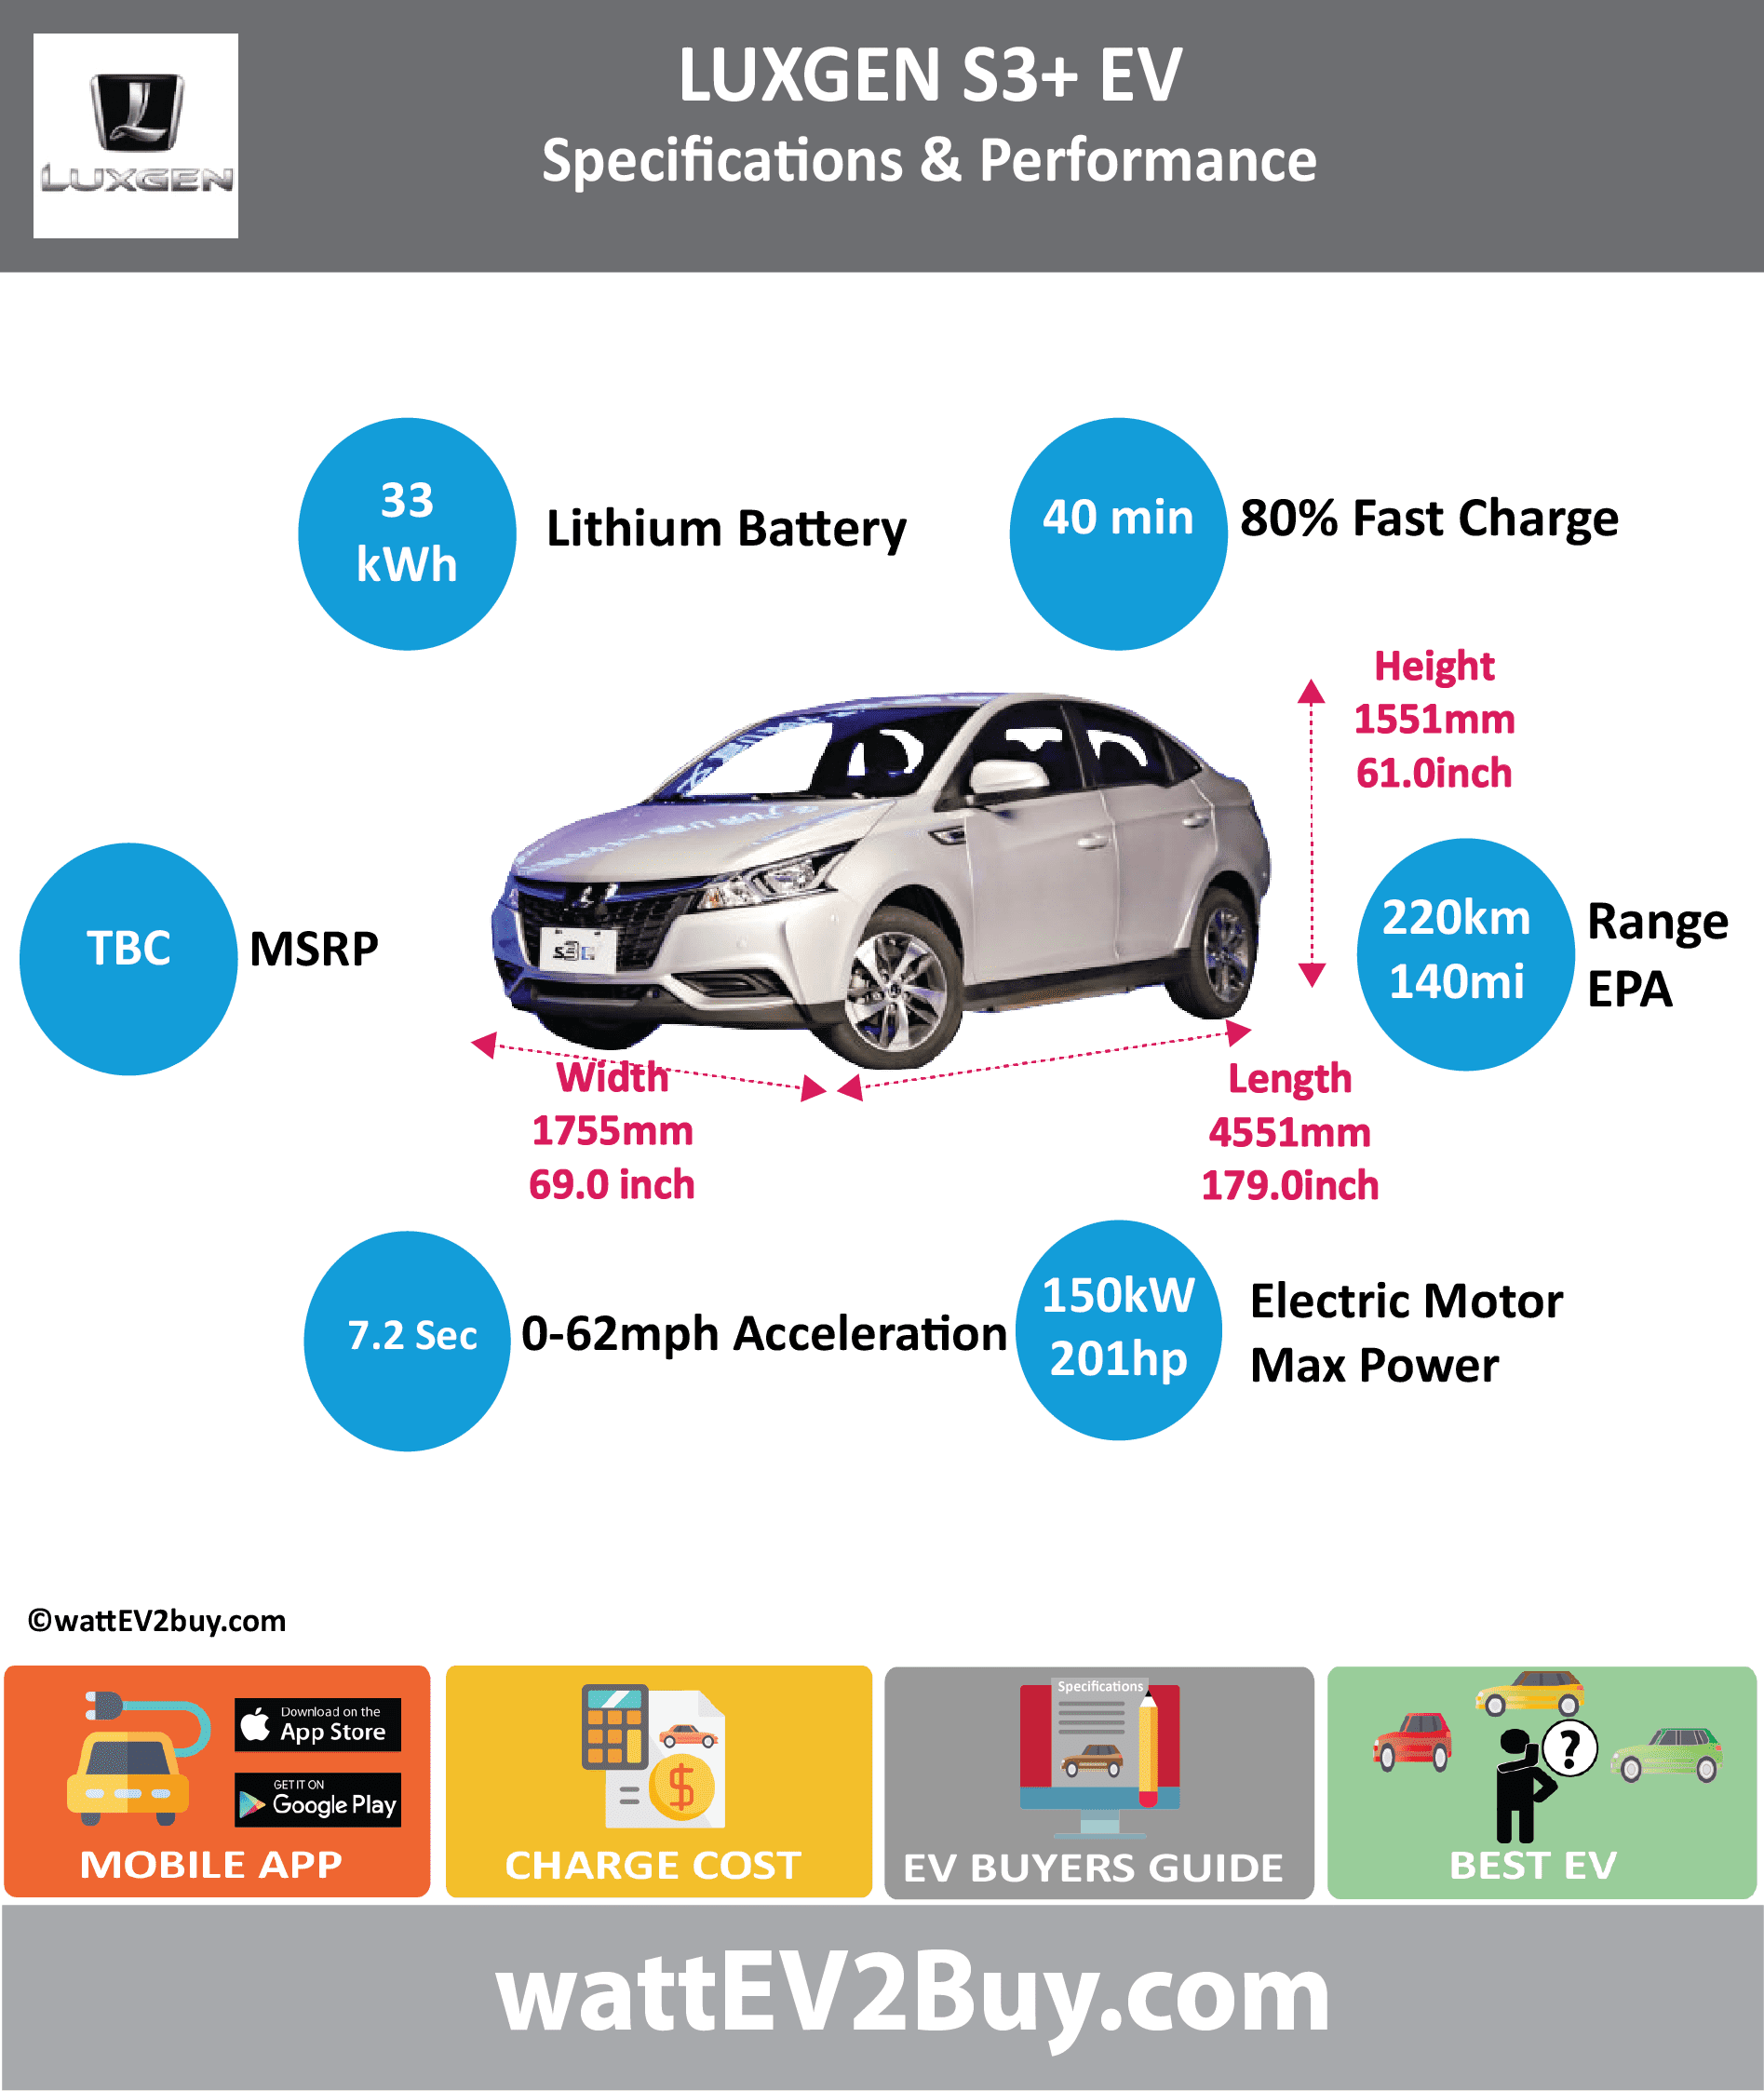 Luxgen S3+ EV Specs		 wattev2Buy.com	2016	2017 Battery Chemistry		 Battery Capacity kWh	33	 Battery Nominal rating kWh		 Voltage V		 Amps Ah		 Cells		 Modules		 Efficiency		 Weight (kg)		 Cell Type		 SOC		 Cooling		 Cycles		 Battery Type		 Depth of Discharge (DOD)		 Energy Density Wh/kg		 Battery Manufacturer		 Battery Warranty - years		 Battery Warranty - km		 Battery Warranty - miles		 Battery Electric Range - at constant 38mph		 Battery Electric Range - at constant 60km/h		 Battery Electric Range - NEDC Mi	140	 Battery Electric Range - NEDC km	220	 Battery Electric Range - CCM Mi		 Battery Electric Range - CCM km		 Battery Electric Range - EPA Mi		 Battery Electric Range - EPA km		 Electric Top Speed - mph		 Electric Top Speed - km/h		 Acceleration 0 - 100km/h sec		 Acceleration 0 - 50km/h sec		 Acceleration 0 - 62mph sec	7.2	 Acceleration 0 - 60mph sec		 Acceleration 0 - 37.2mph sec		 Wireless Charging		 Direct Current Fast Charge kW		 Charger Efficiency		 Onboard Charger kW		 Onboard Charger Optional kW		 Charging Cord - amps		 Charging Cord - volts		 LV 1 Charge kW		 LV 1 Charge Time (Hours)		 LV 2 Charge kW		 LV 2 Charge Time (Hours)		 LV 3 CCS/Combo kW		 LV 3 Charge Time (min to 70%)		 LV 3 Charge Time (min to 80%)	40	 LV 3 Charge Time (mi)		 LV 3 Charge Time (km)		 Supercharger		 Charging System kW		 Charger Output		 Charge Connector		 Power Outlet kW		 Power Outlet Amps		 MPGe Combined - miles		 MPGe Combined - km		 MPGe City - miles		 MPGe City - km		 MPGe Highway - miles		 MPGe Highway - km		 Max Power - hp (Electric Max)	201	 Max Power - kW  (Electric Max)	150	 Max Torque - lb.ft  (Electric Max)		 Max Torque - N.m  (Electric Max)		 Drivetrain		 Generator		 Motor Type		 Electric Motor Manufacturer		 Electric Motor Output kW		 Electric Motor Output hp		 Transmission		 Electric Motor - Rear		 Max Power - hp (Rear)		 Max Power - kW (Rear)		 Max Torque - lb.ft (Rear)		 Max Torque - N.m (Rear)		 Electric Motor - Front		 Max Power - hp (Front)		 Max Power - kW (Front)		 Max Torque - lb.ft (Front)		 Max Torque - N.m (Front)		 Energy Consumption kWh/100km		 Energy Consumption kWh/100miles		 Deposit		 GB Battery Lease per month		 EU Battery Lease per month		 MSRP (expected)		 EU MSRP (before incentives & destination)		 GB MSRP (before incentives & destination)		 US MSRP (before incentives & destination)		 CHINA MSRP (before incentives & destination)		 Local Currency MSRP		 MSRP after incentives		 Vehicle		 Trims		 Doors		 Seating		 Dimensions		 Luggage (L)		 GVWR (kg)		 GVWR (lbs)		 Curb Weight (kg)		 Curb Weight (lbs)		 Payload Capacity (kg)		 Payload Capacity (lbs)		 Towing Capacity (lbs)		 Max Load Height (m)		 Ground Clearance (inc)		 Ground Clearance (mm)		 Lenght (mm)	4551	 Width (mm)	1755	 Height (mm)	1551	 Wheelbase (mm)	2620	 Lenght (inc)	179.0	 Width (inc)	69.0	 Height (inc)	61.0	 Wheelbase (inc)	103.1	 Other		 Utility Factor		 Auto Show Unveil		 Availability		 Market		 Segment		 LCD Screen (inch)		 Class		 Safety Level		 Unveiled		 Relaunch		 First Delivery		 Chassis designed		 Based On		 AKA		 Self-Driving System		 SAE Autonomous Level		 Connectivity		 Unique		 Extras		 Incentives		 Home Charge Installation		 Public Charging		 Subsidy		 Chinese Name		 Model Code		 WEBSITE